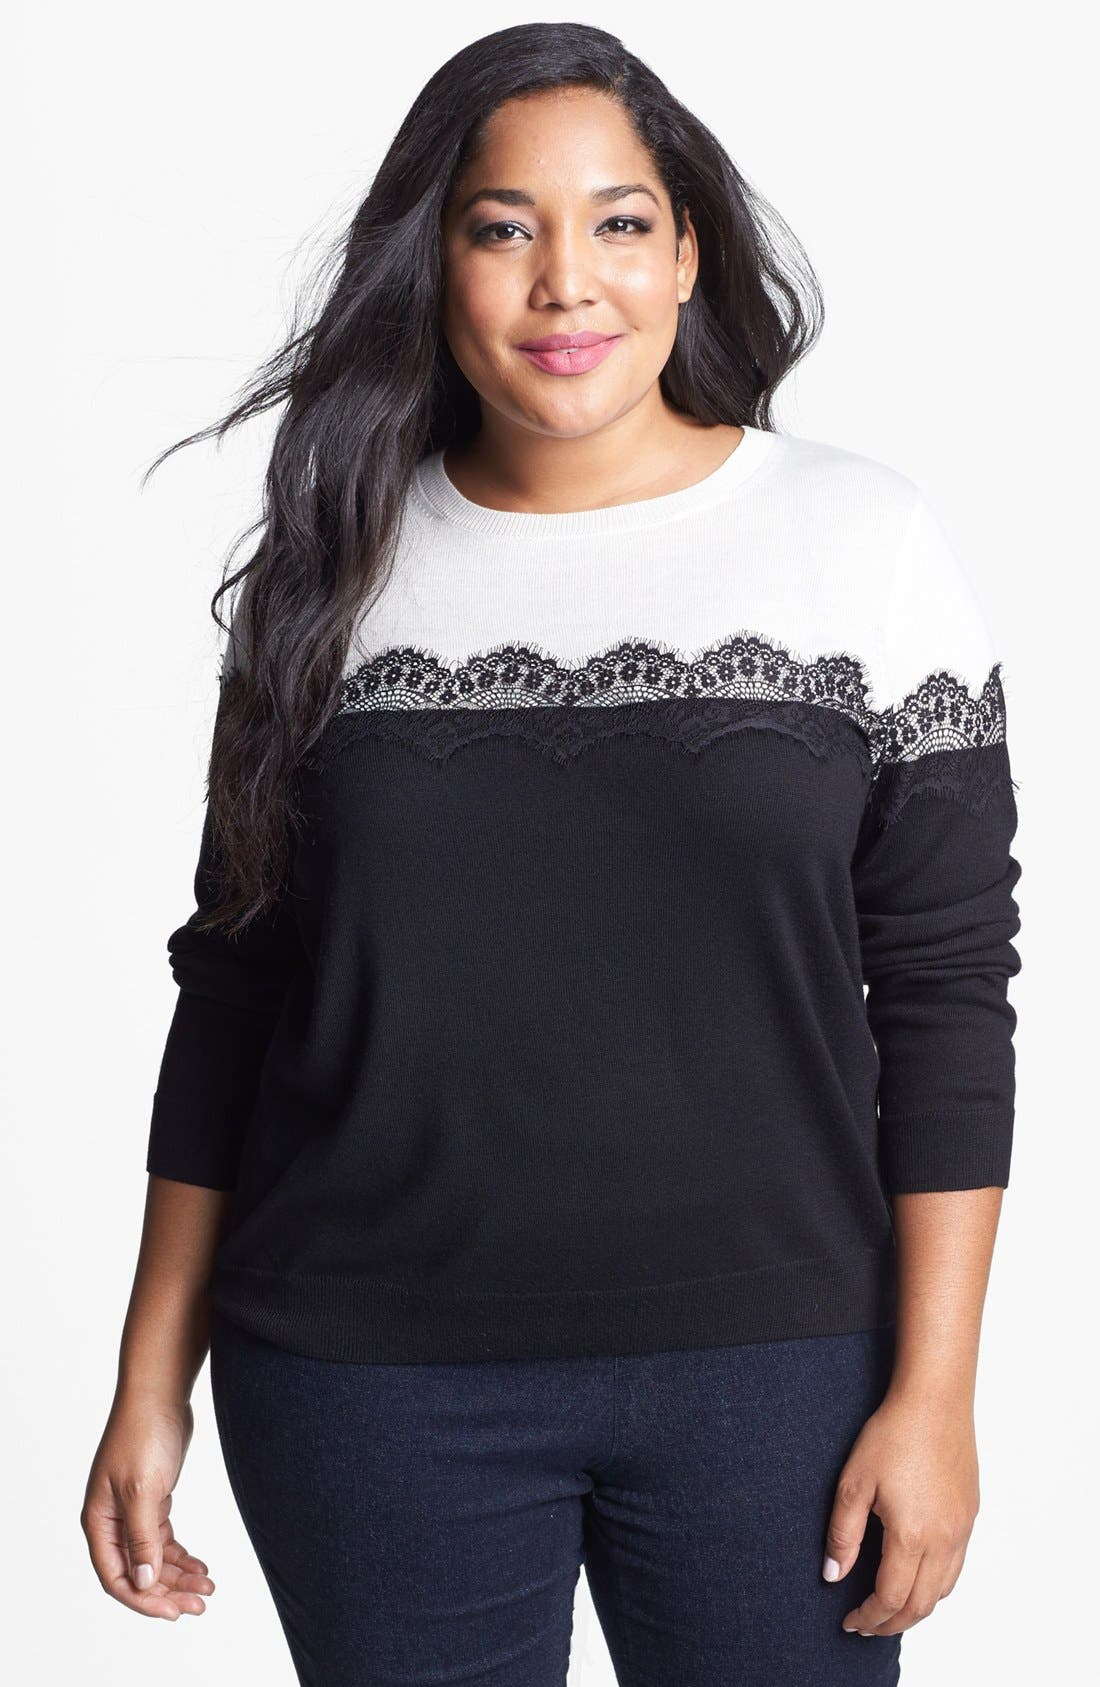 Alternate Image 1 Selected - Vince Camuto Lace Trim Sweater (Plus Size)